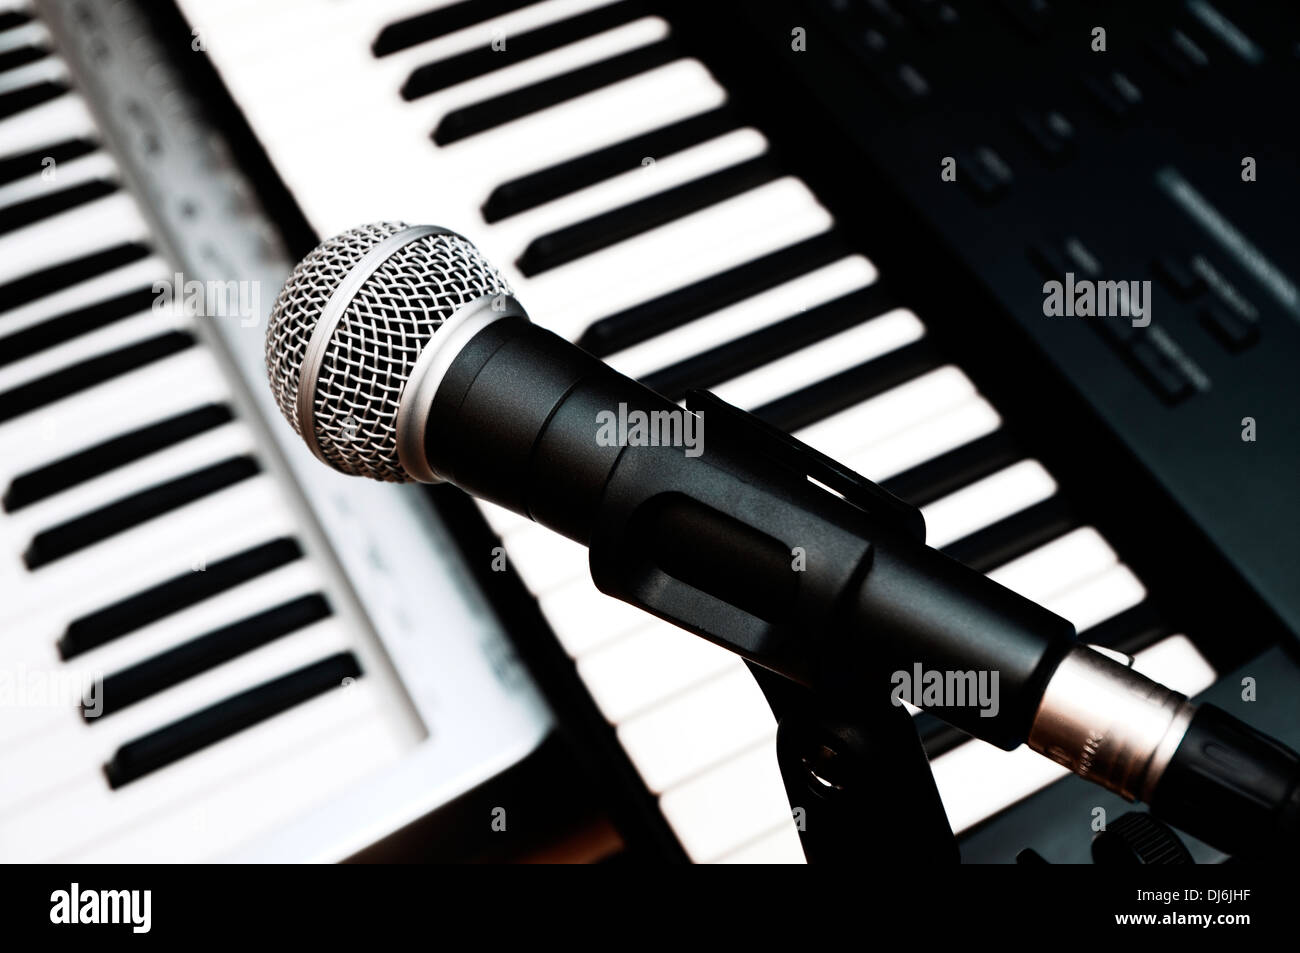 microphone and piano keyboards background Stock Photo